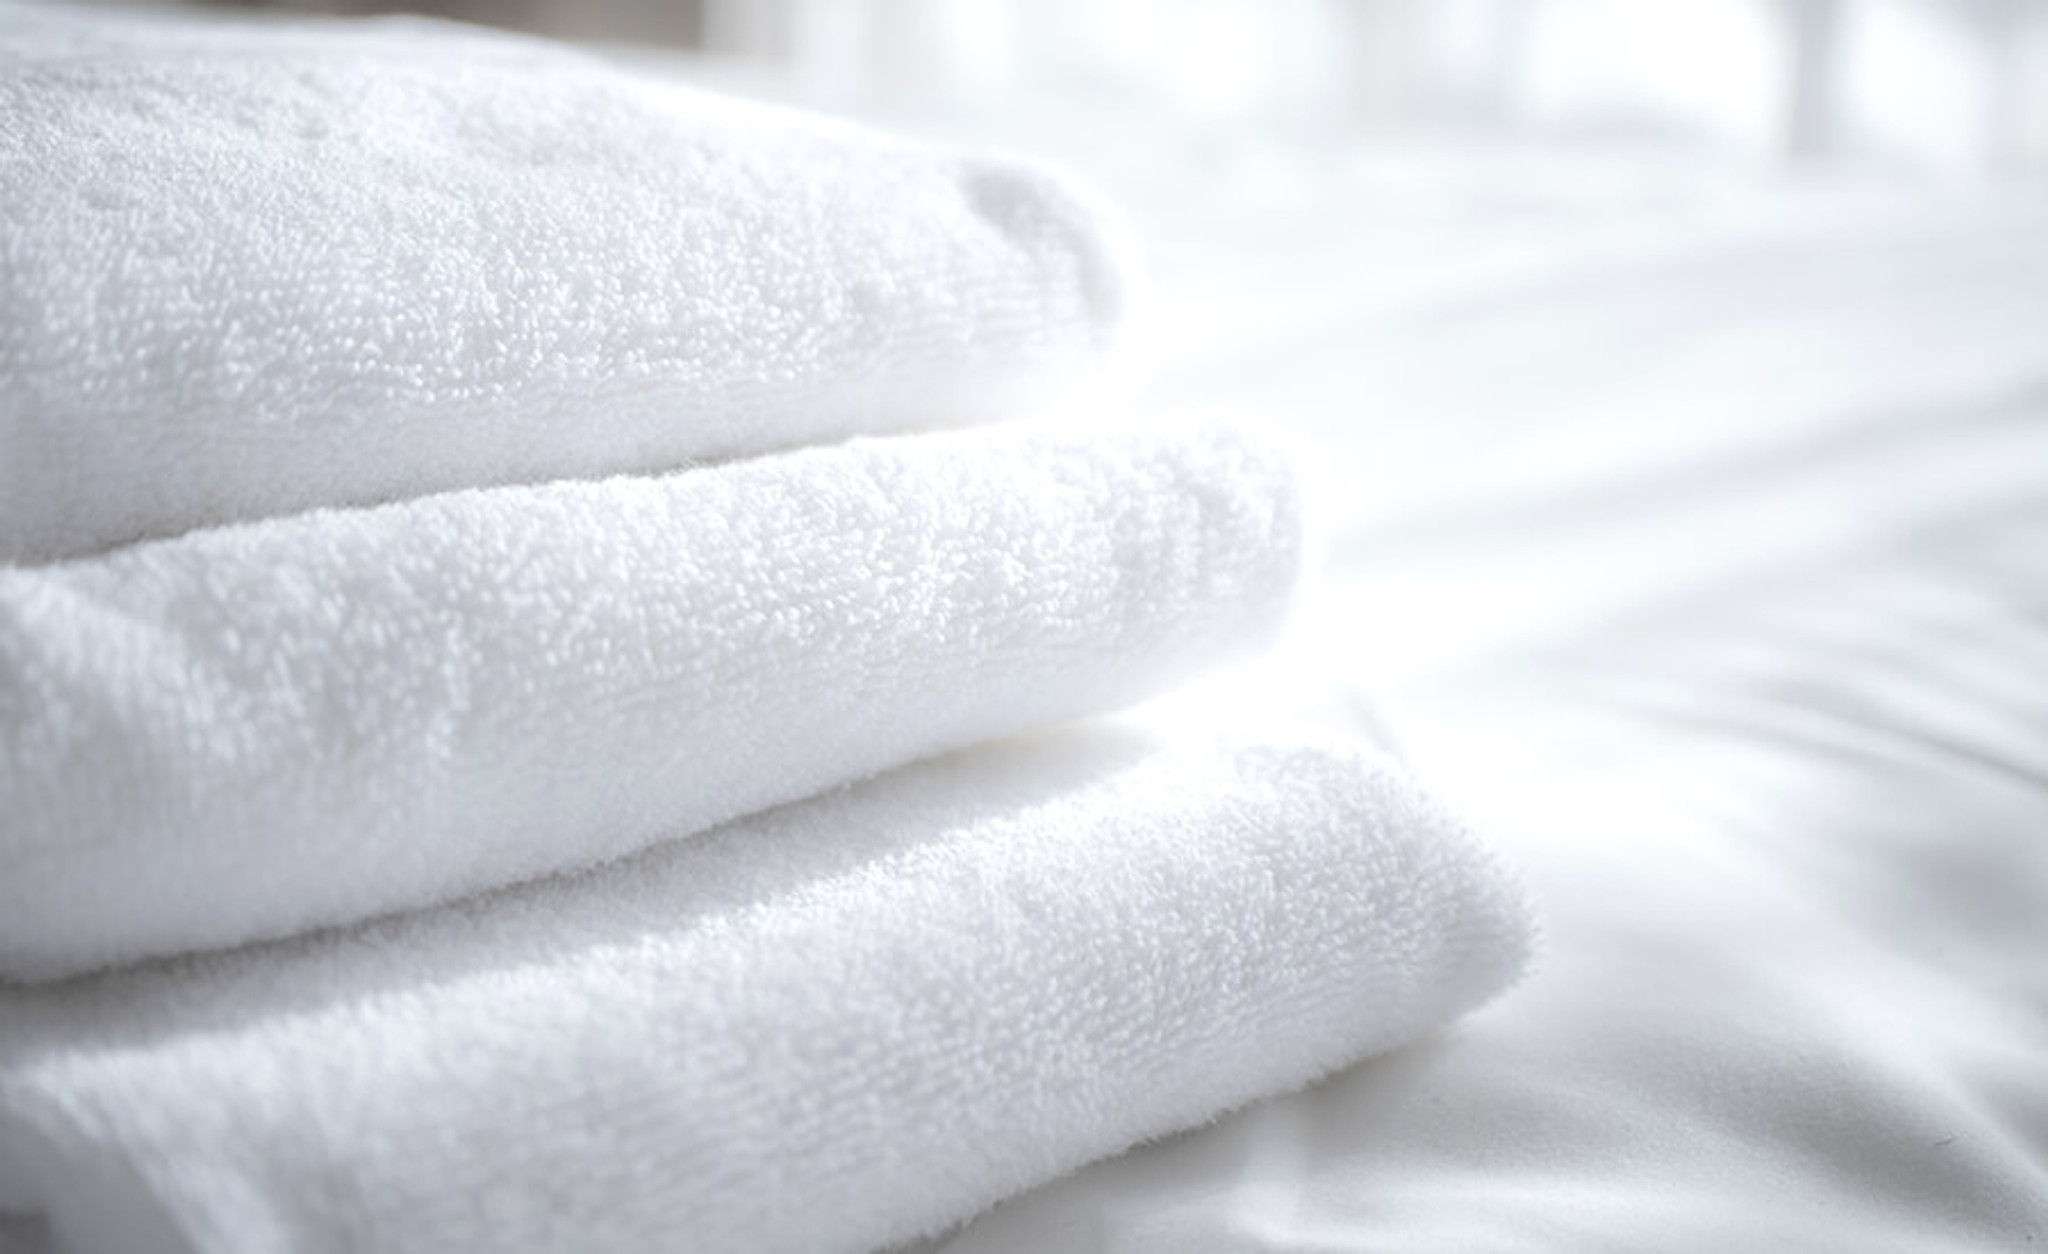 Why to avoid buying inexpensive bath towels...